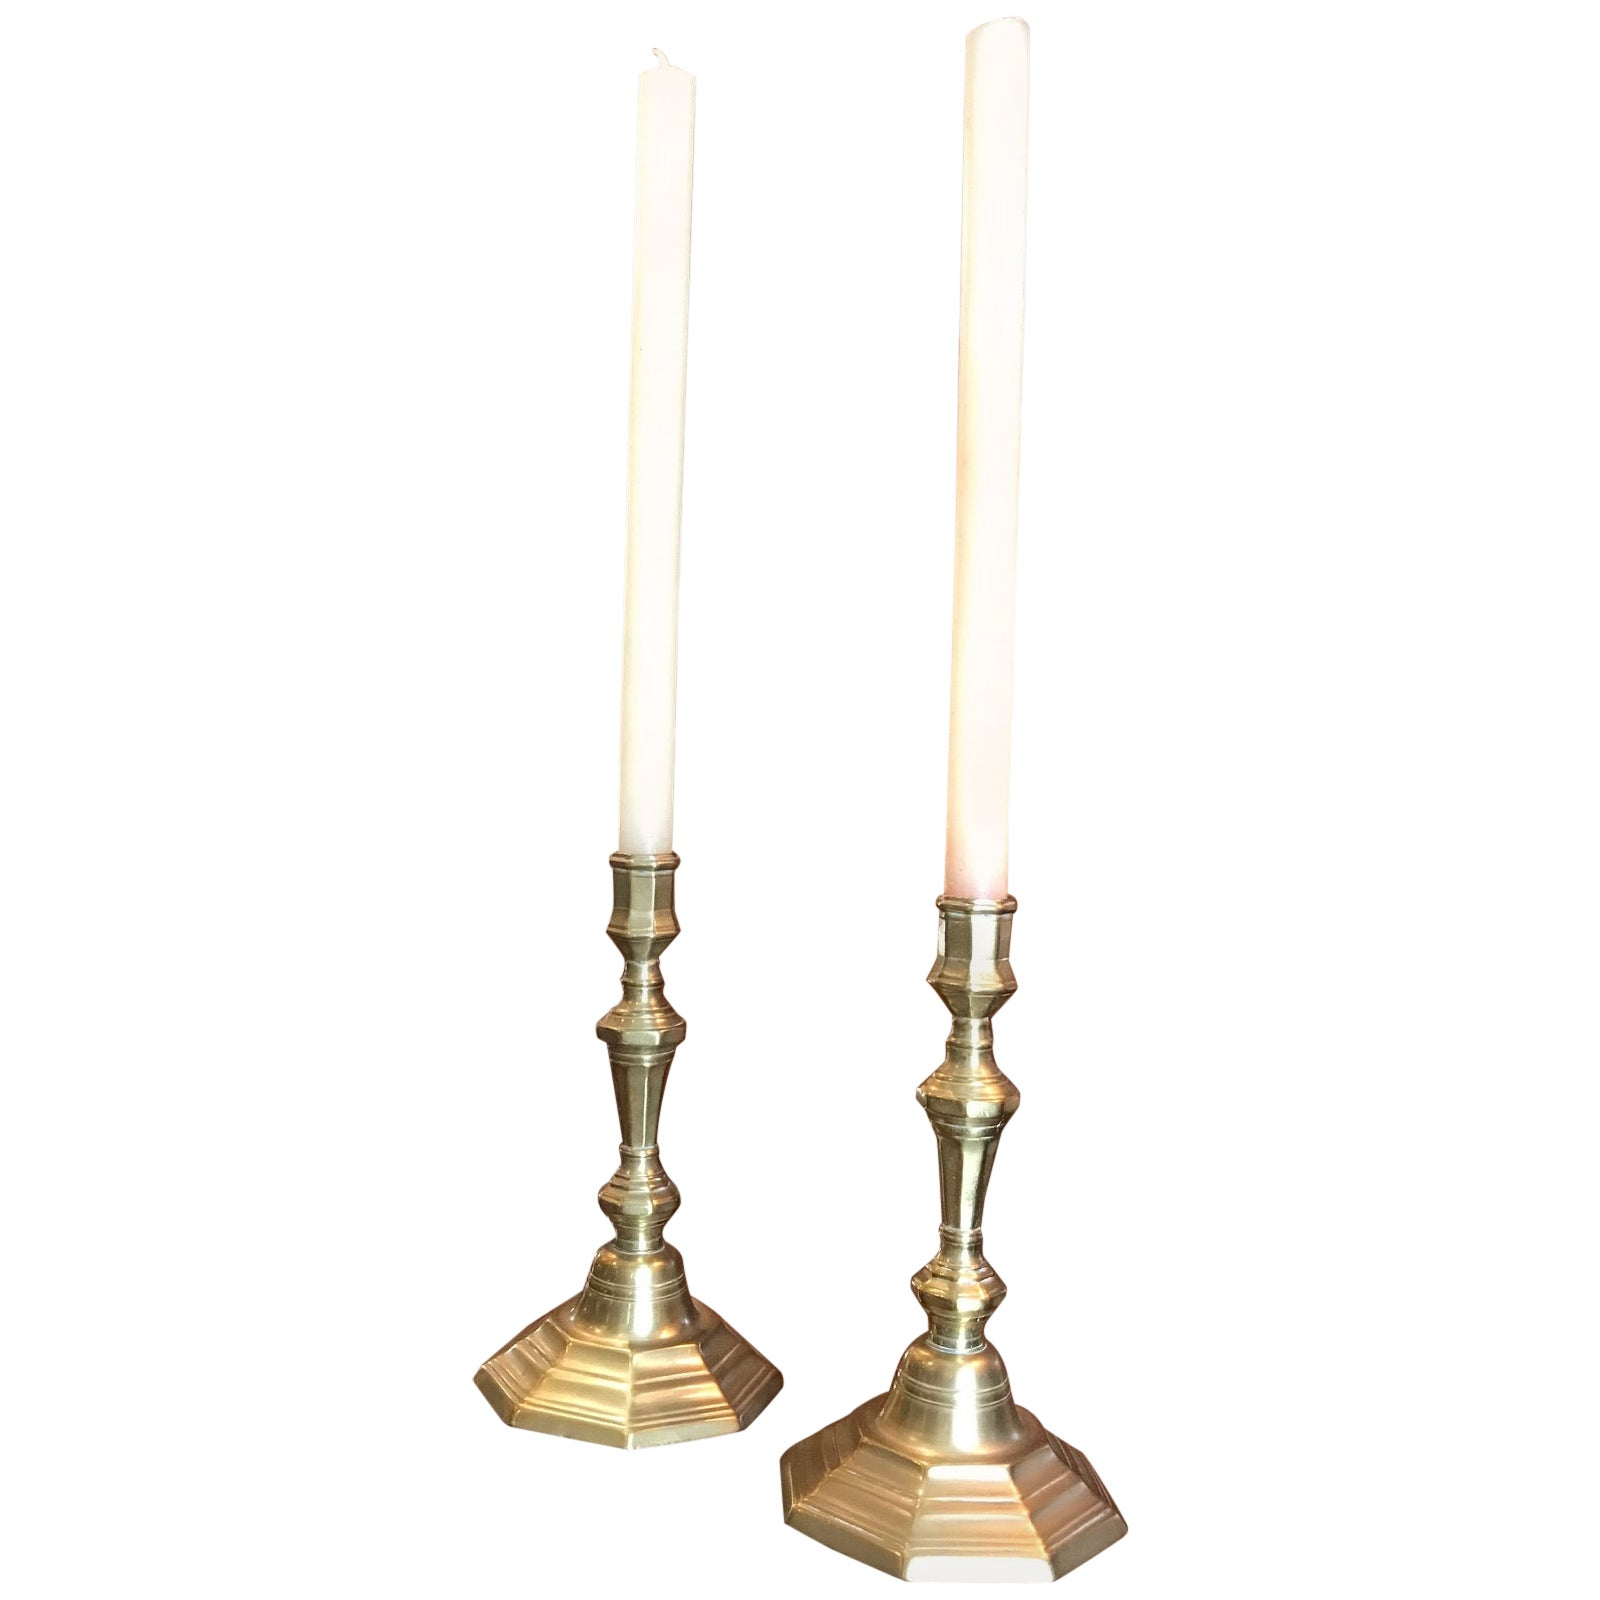 Pair 17th C. Candlesticks Candle Holder Light in Brass Antique Gift Object LA CA